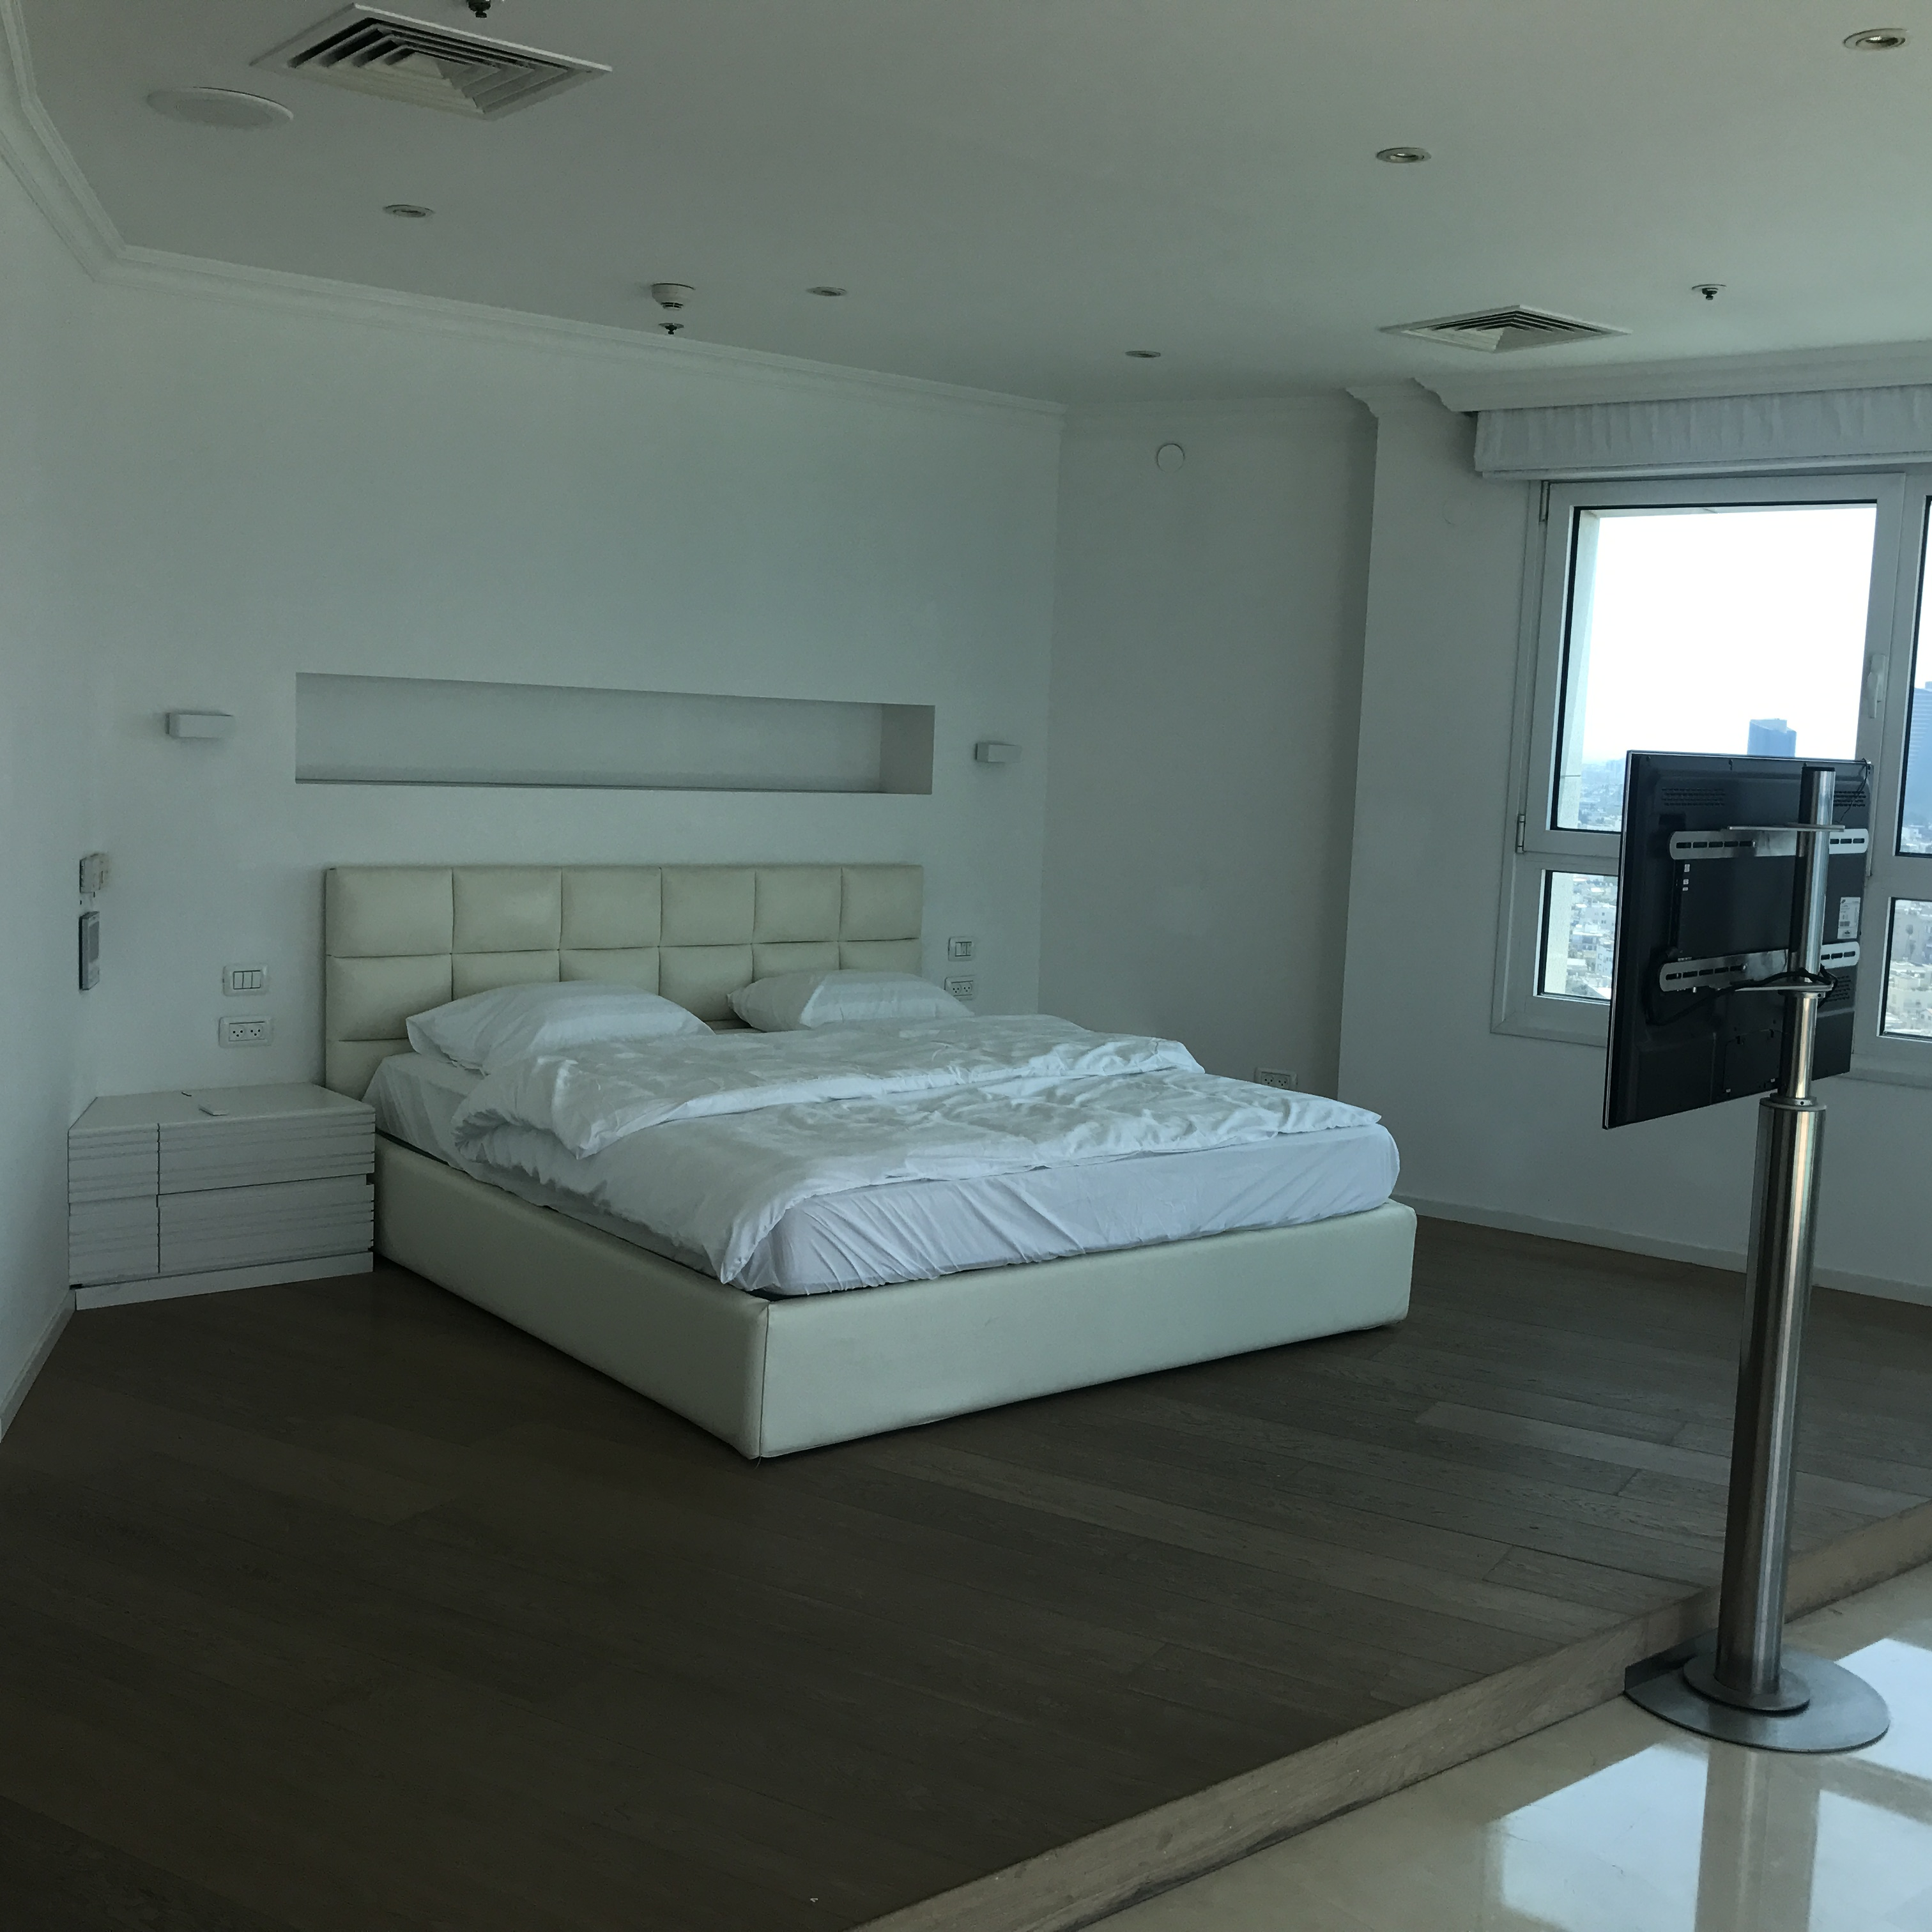 4 Bedrooms Apartments For Rent: Fully Furnished 4 Bedroom Seaside Luxury Apartment In